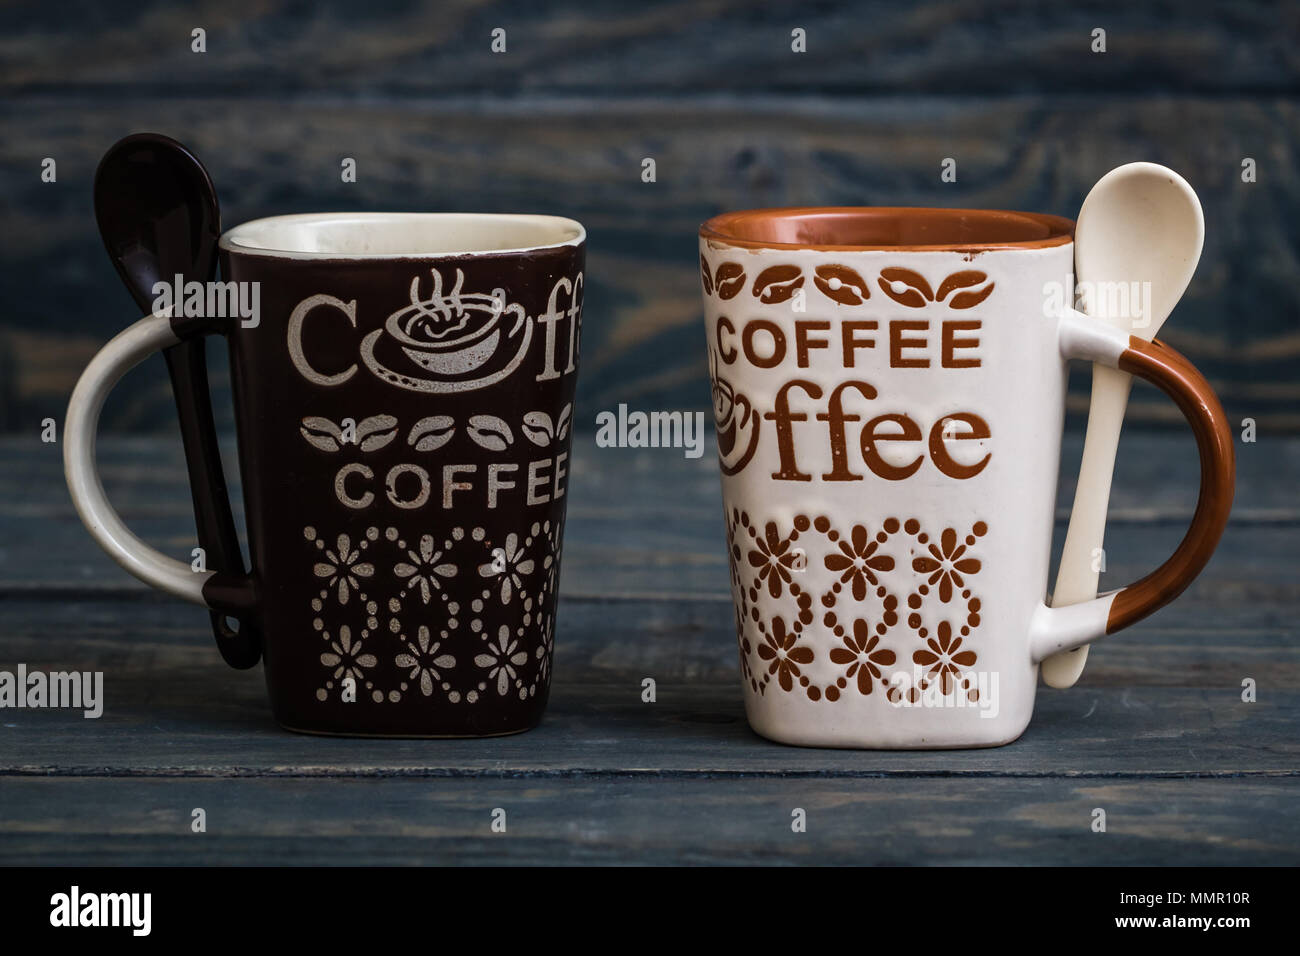 211ae699c03 White, brown ceramic coffee mugs on wooden background Stock Photo ...